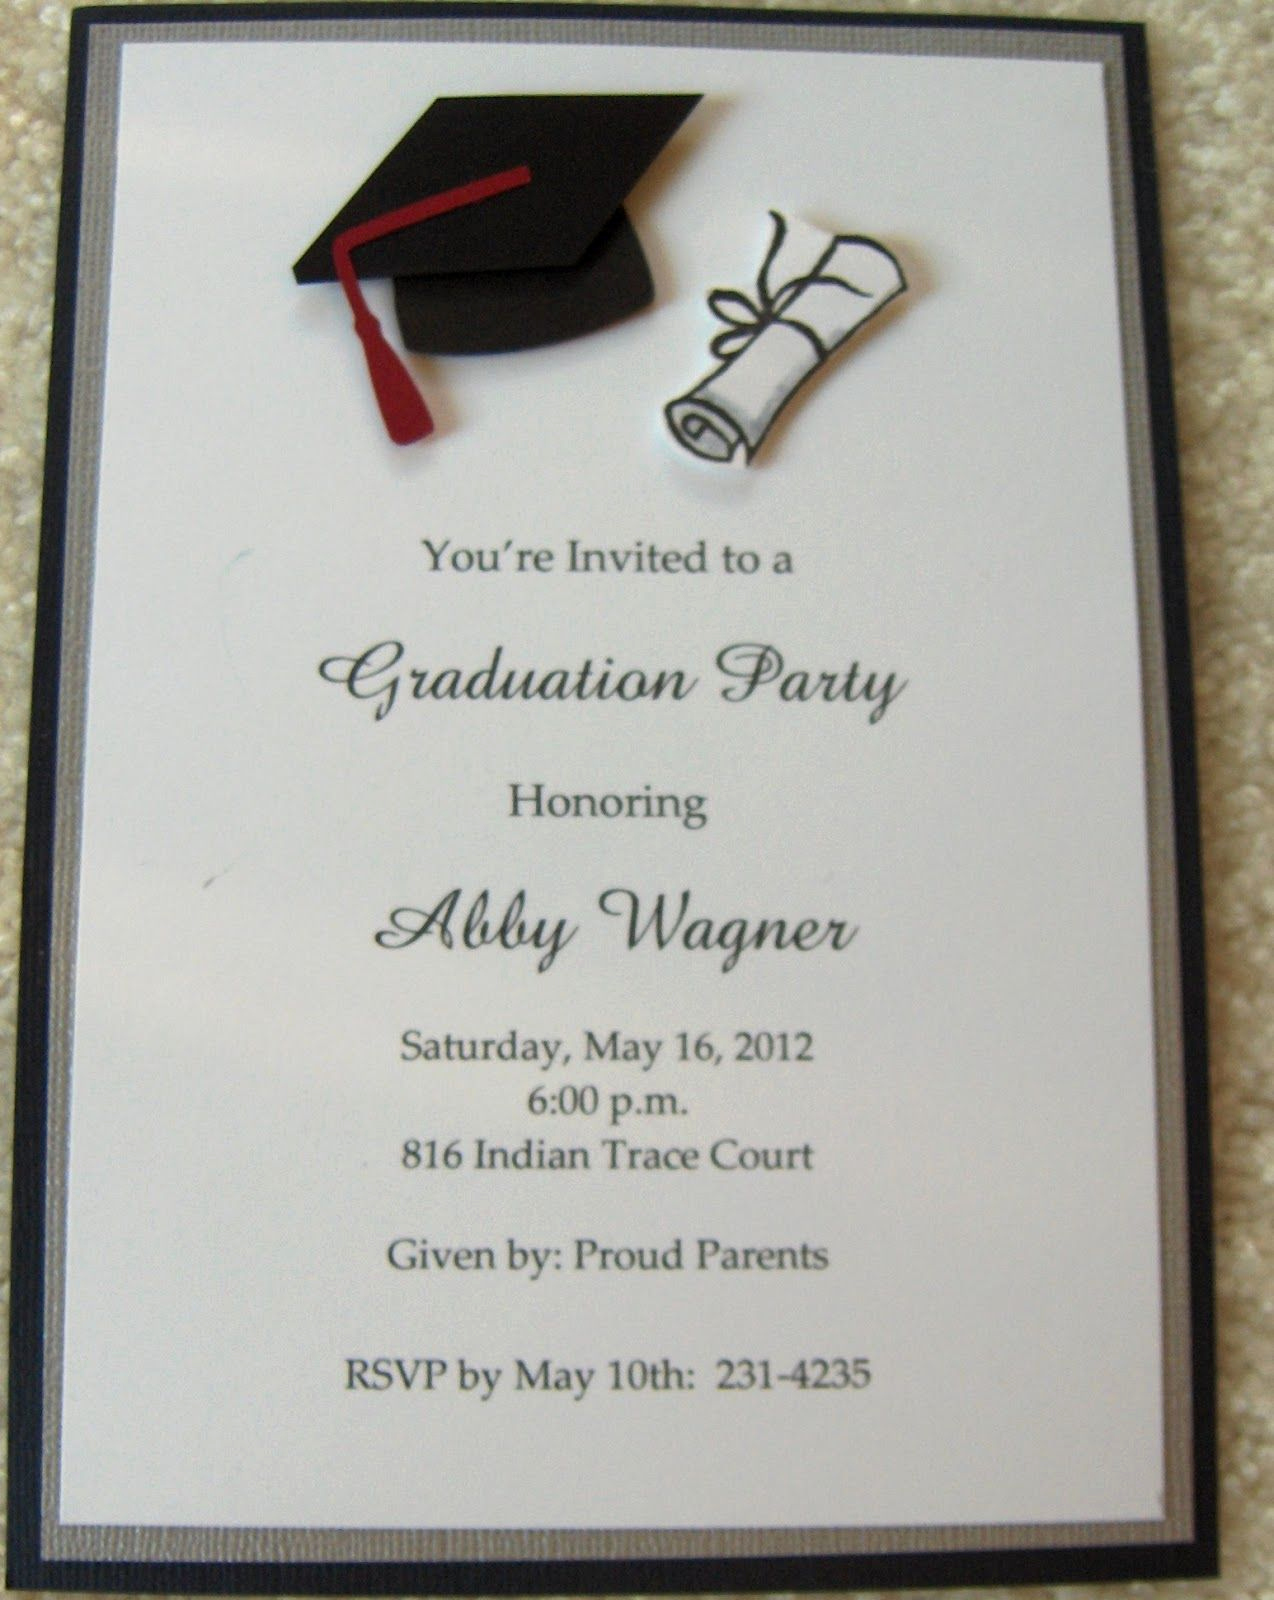 Graduation Party Invitation Text Awesome Graduation Invitations Google Search